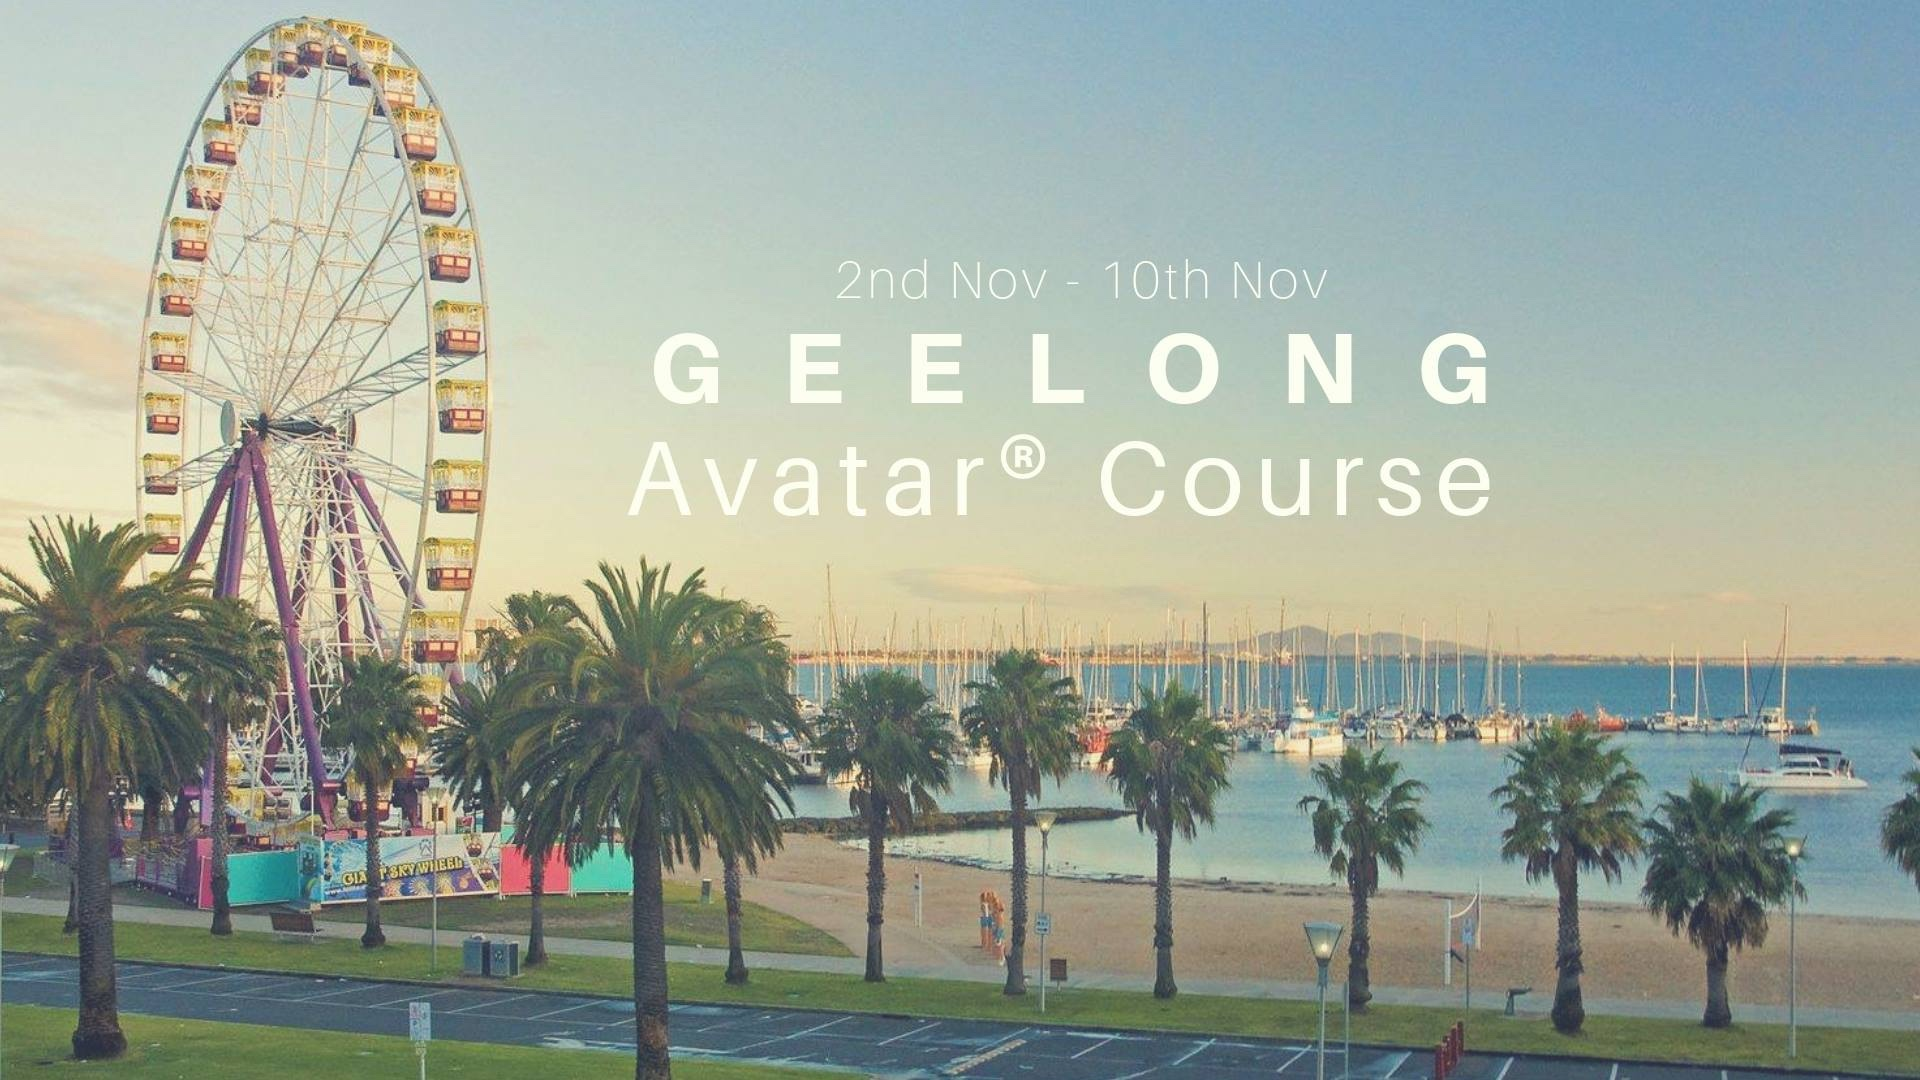 Geelong Avatar Course Nov 2019